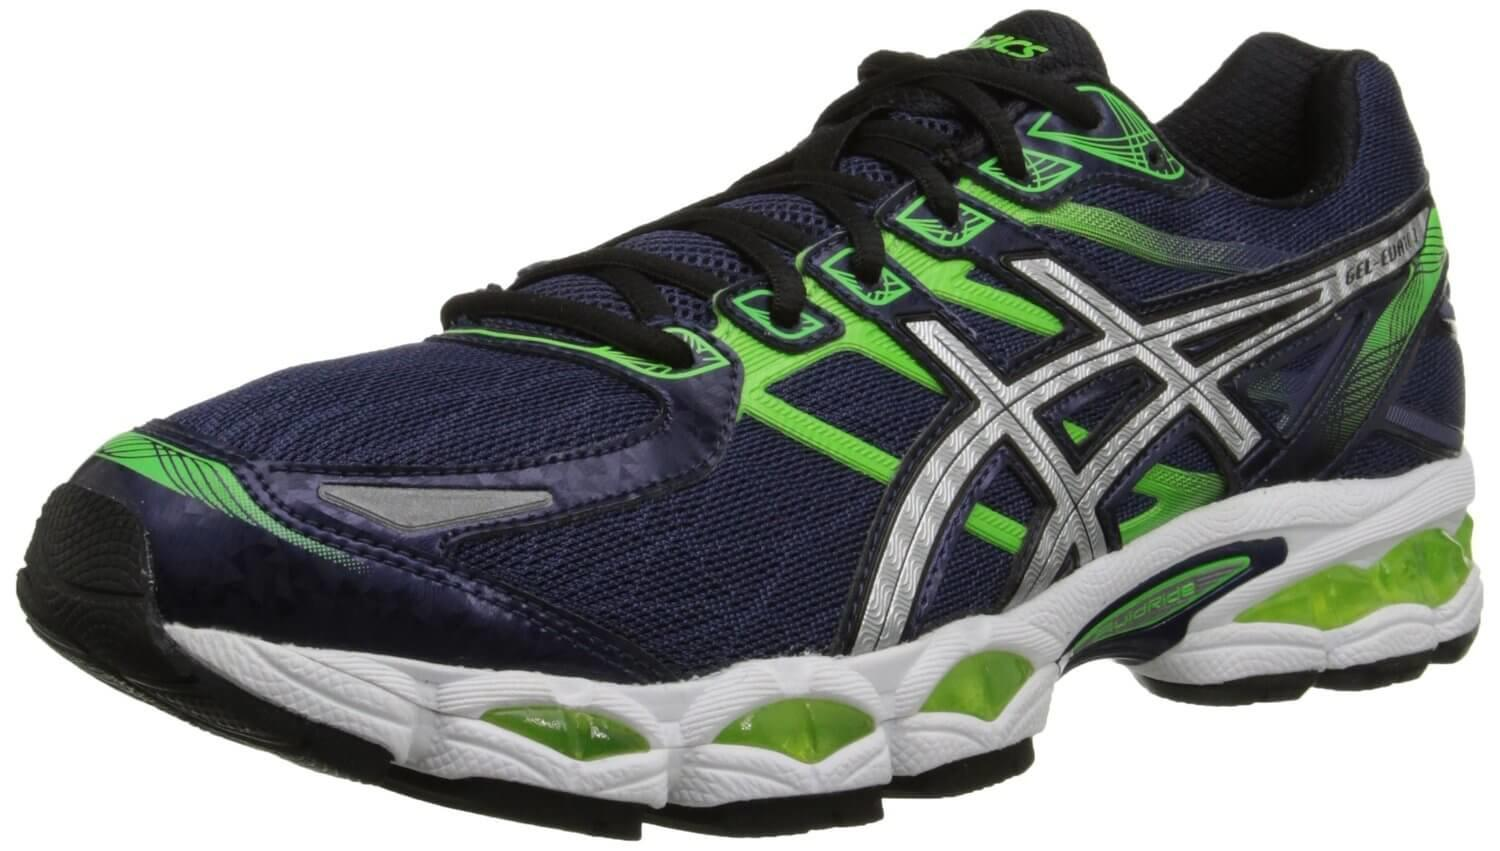 Asics Gel Evate 3 Mens Running Shoes